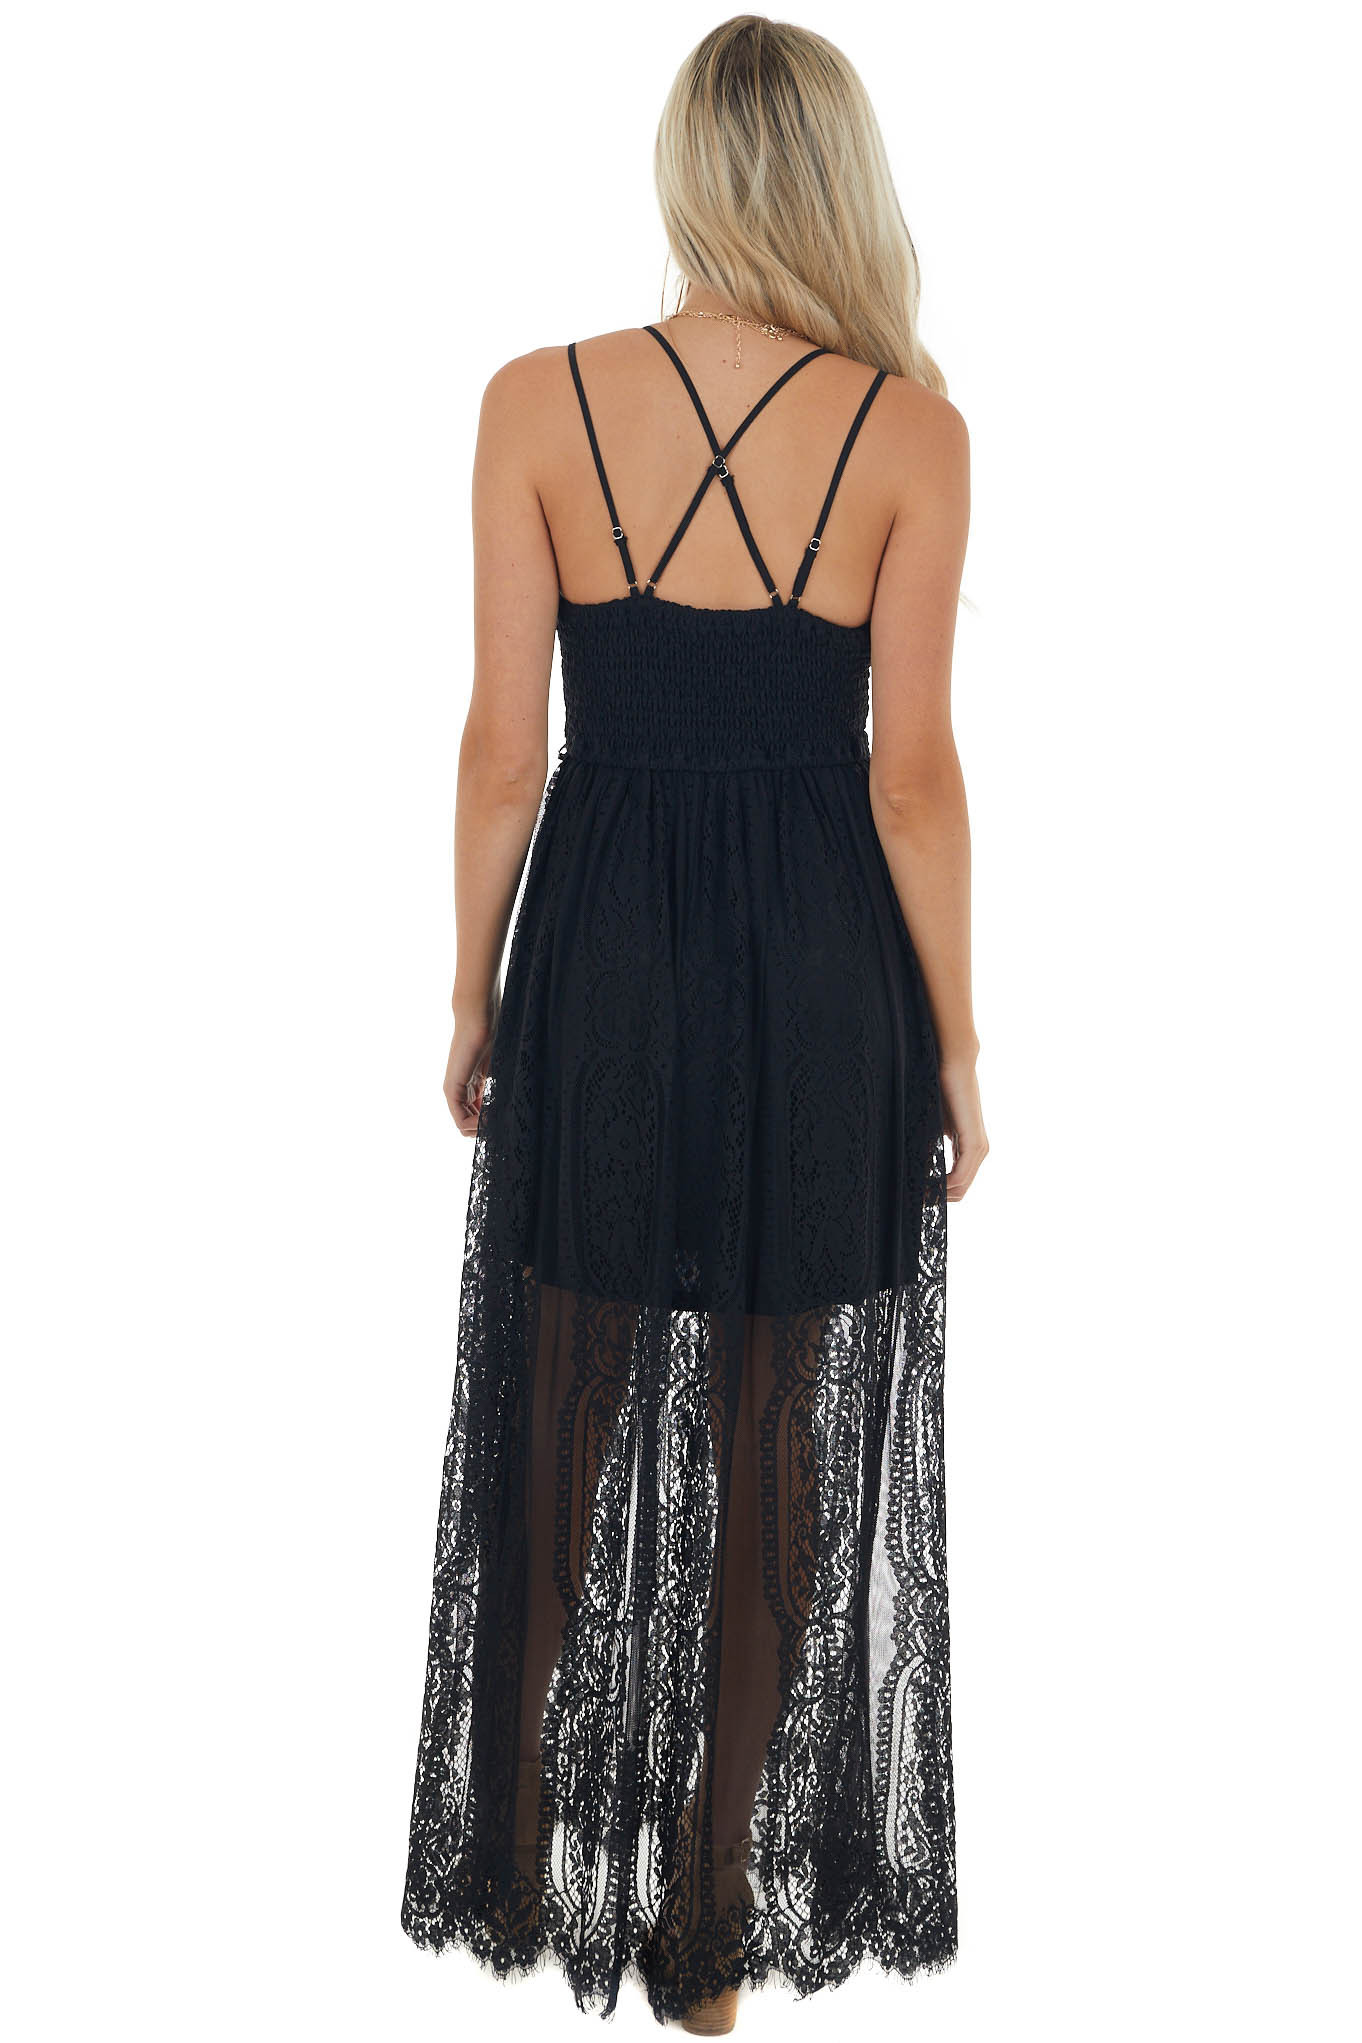 Black Lace Maxi Overlay Sleeveless Dress with Plunging Neck